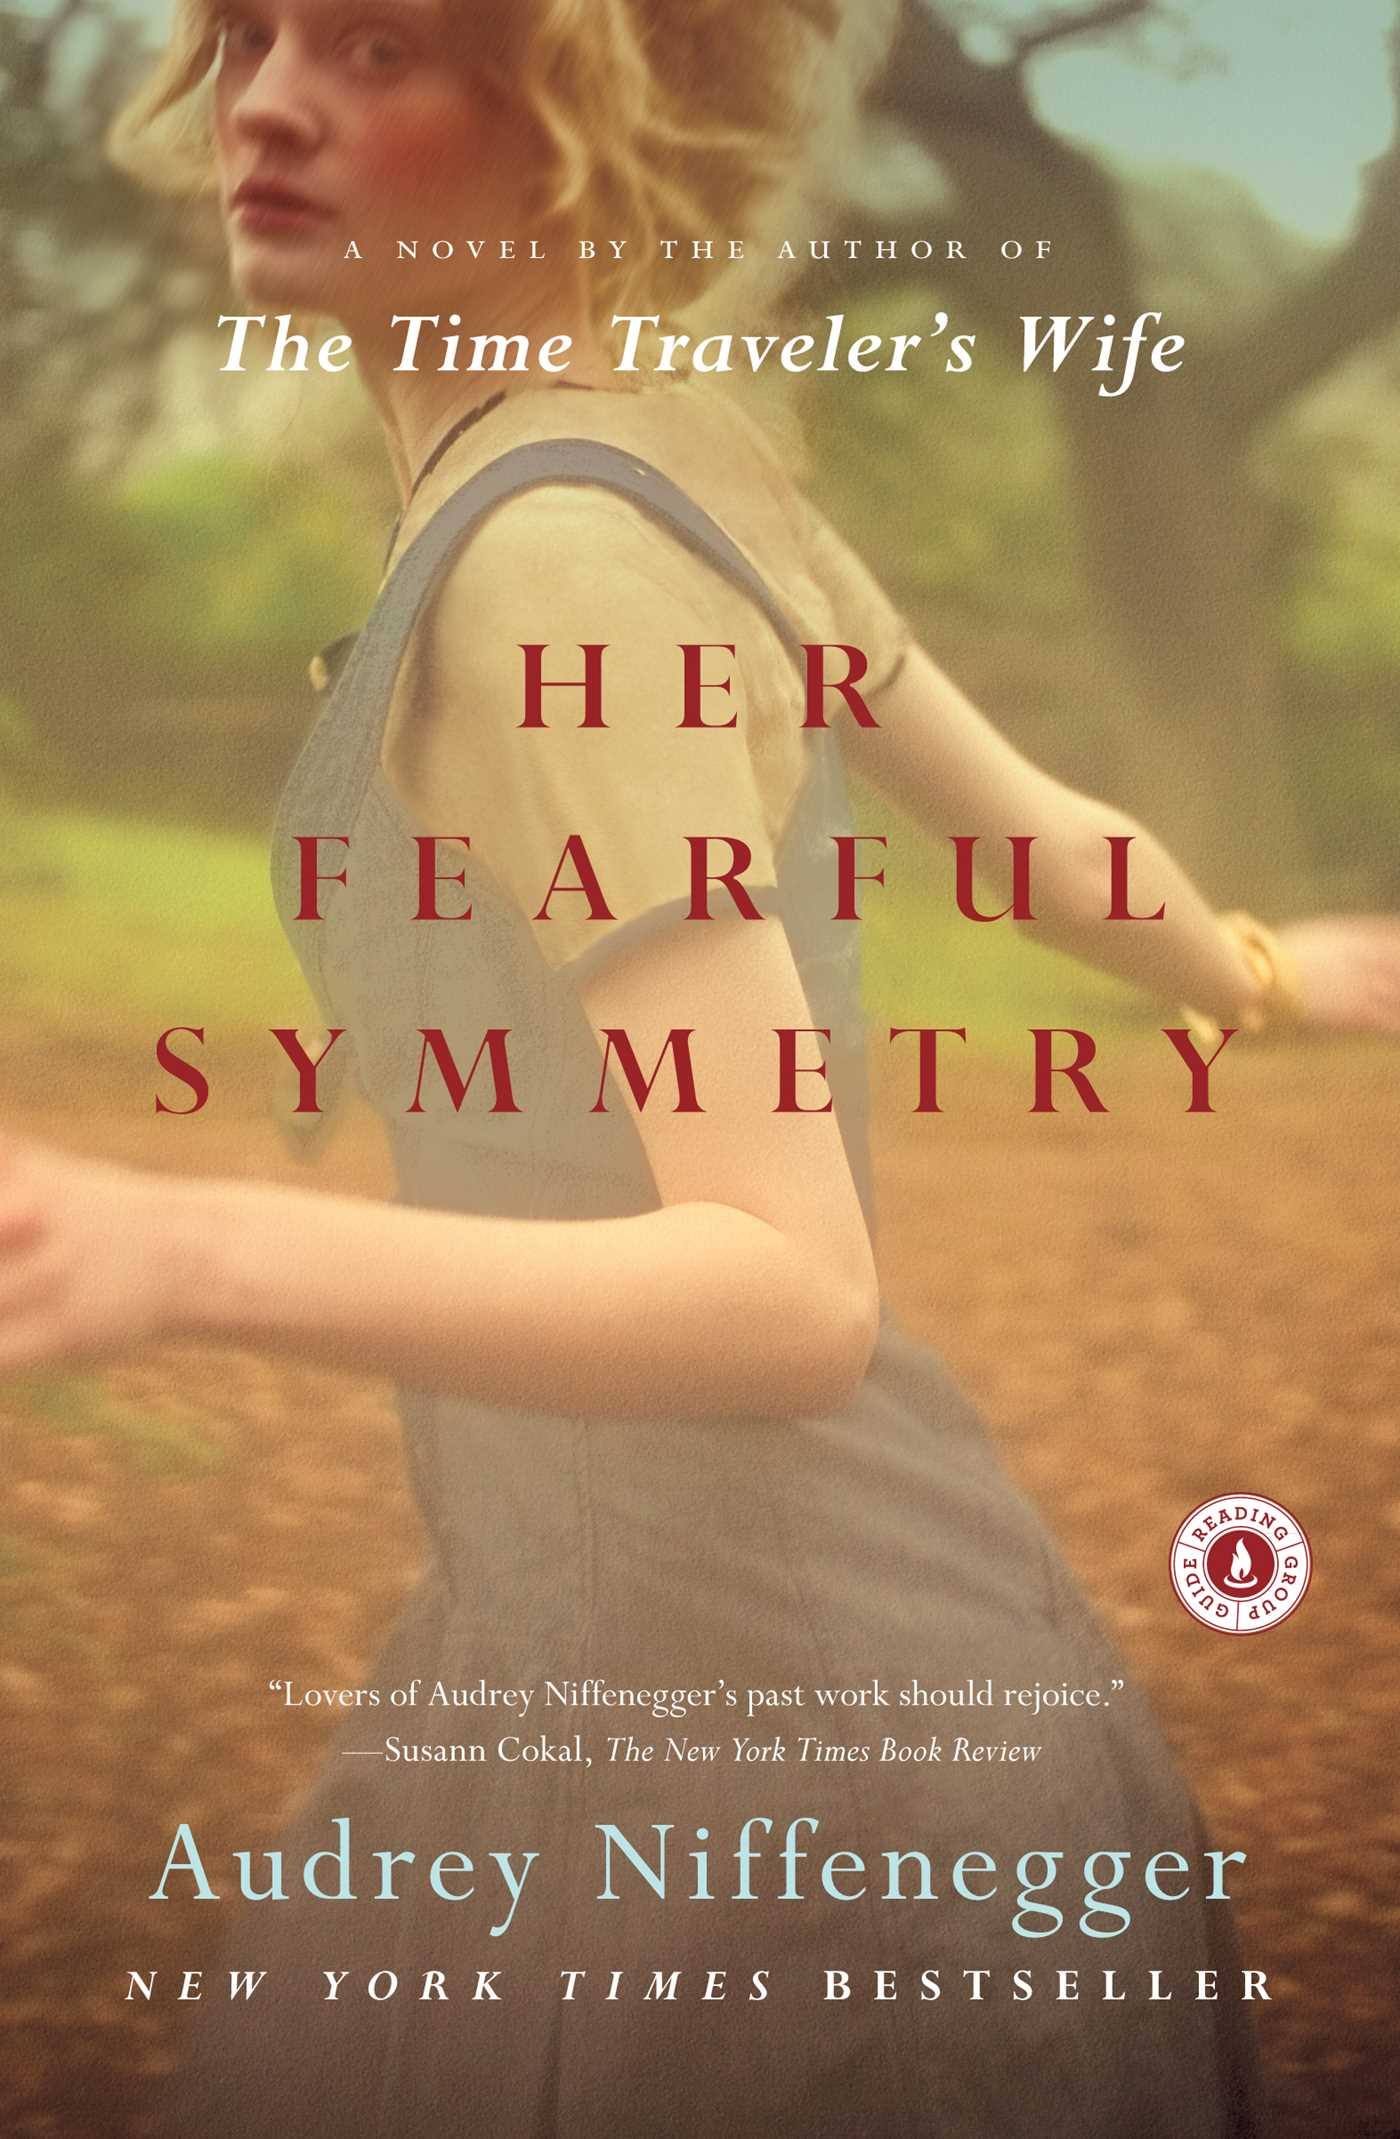 Her-fearful-symmetry-9781439169179_hr